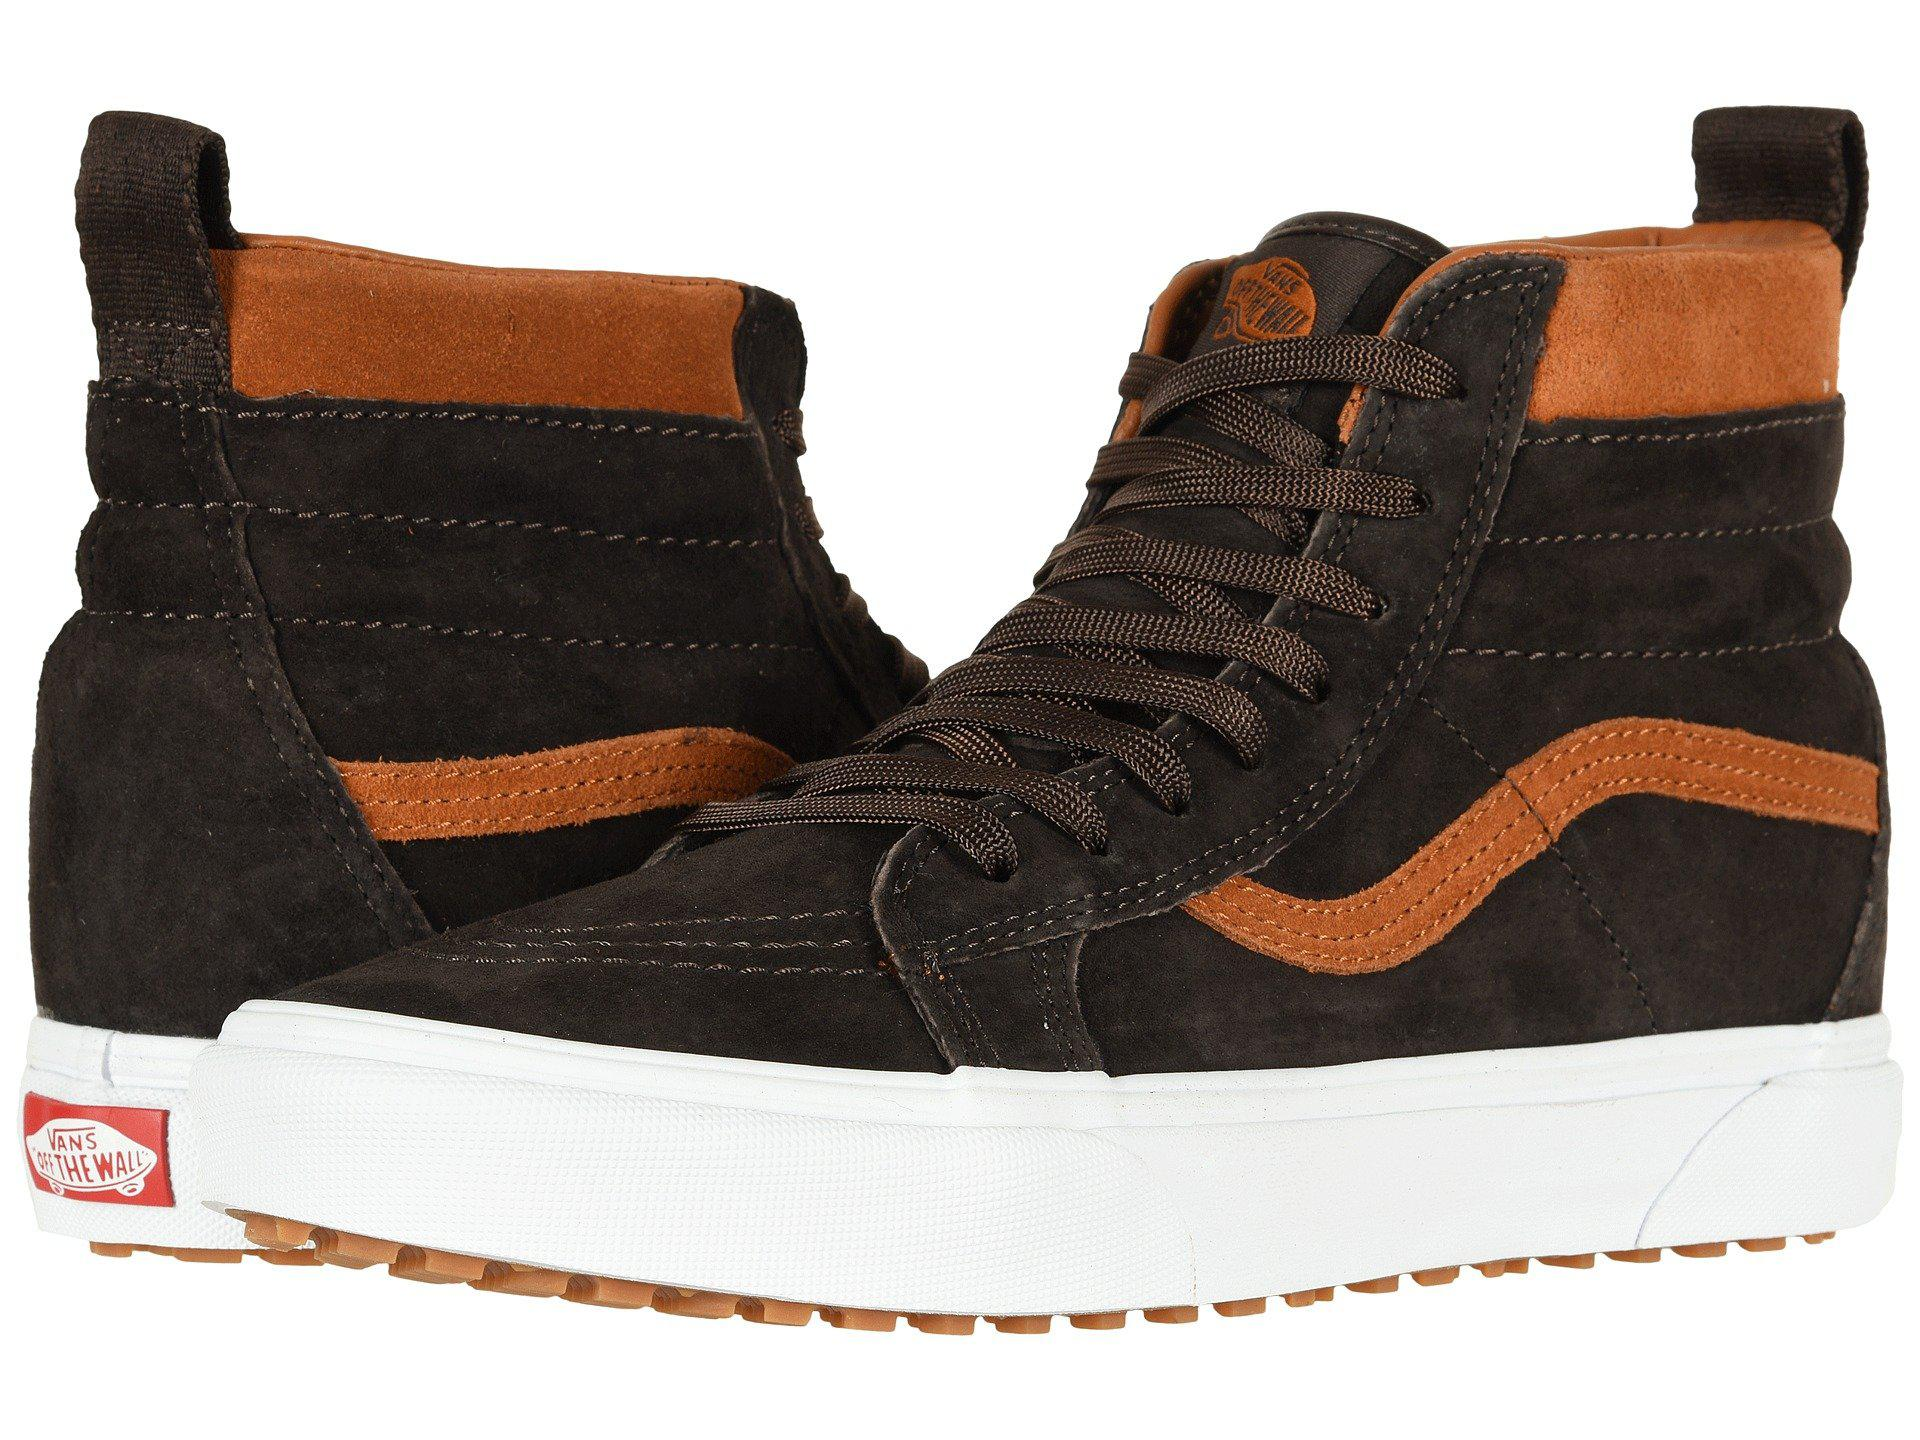 8a9c3e18b6b28f Lyst - Vans Sk8-hi Mte ((mte) Suede chocolate Torte) Skate Shoes in ...